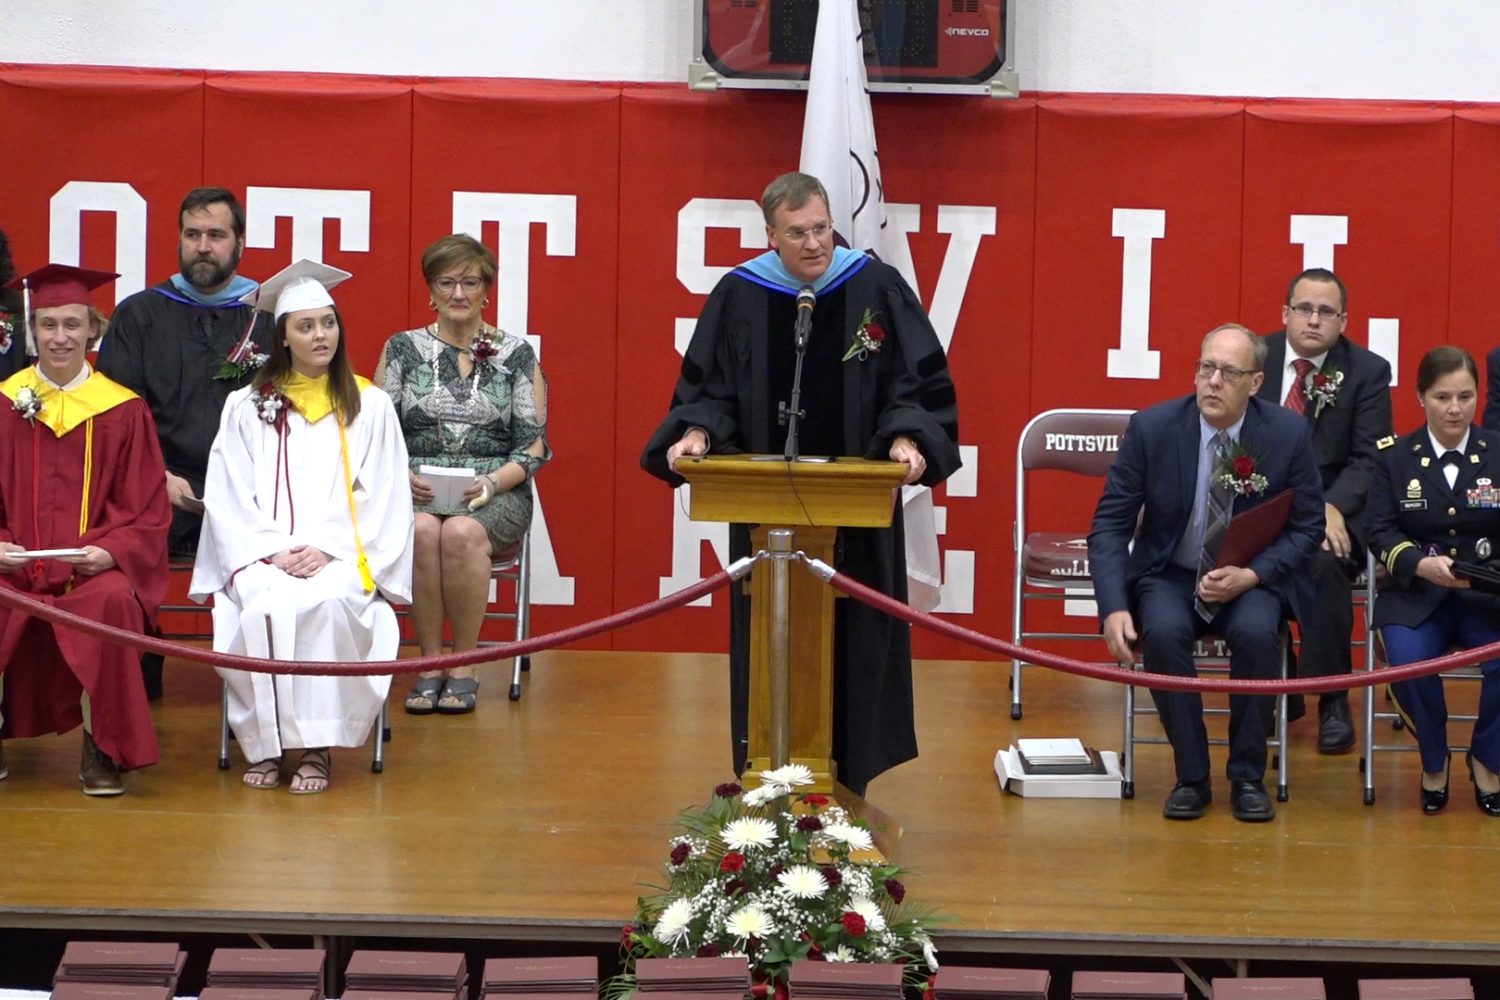 84th Commencement at Pottsville Area High School